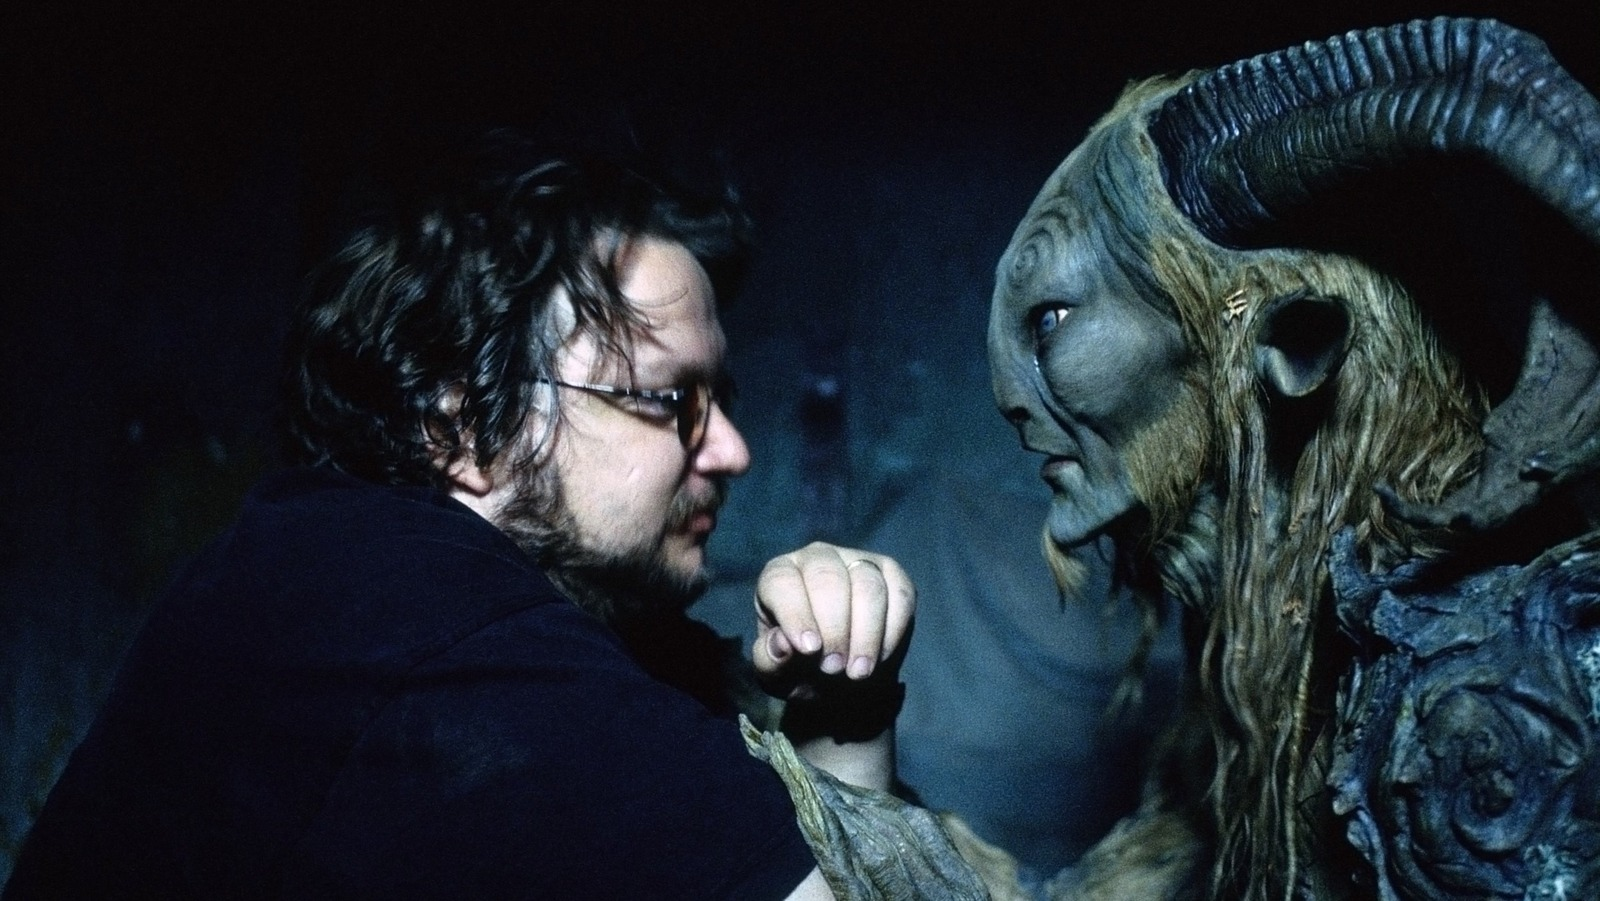 Guillermo Del Toro, Edgar Wright, And Other Directors Share Tales Of Their Unmade Scripts